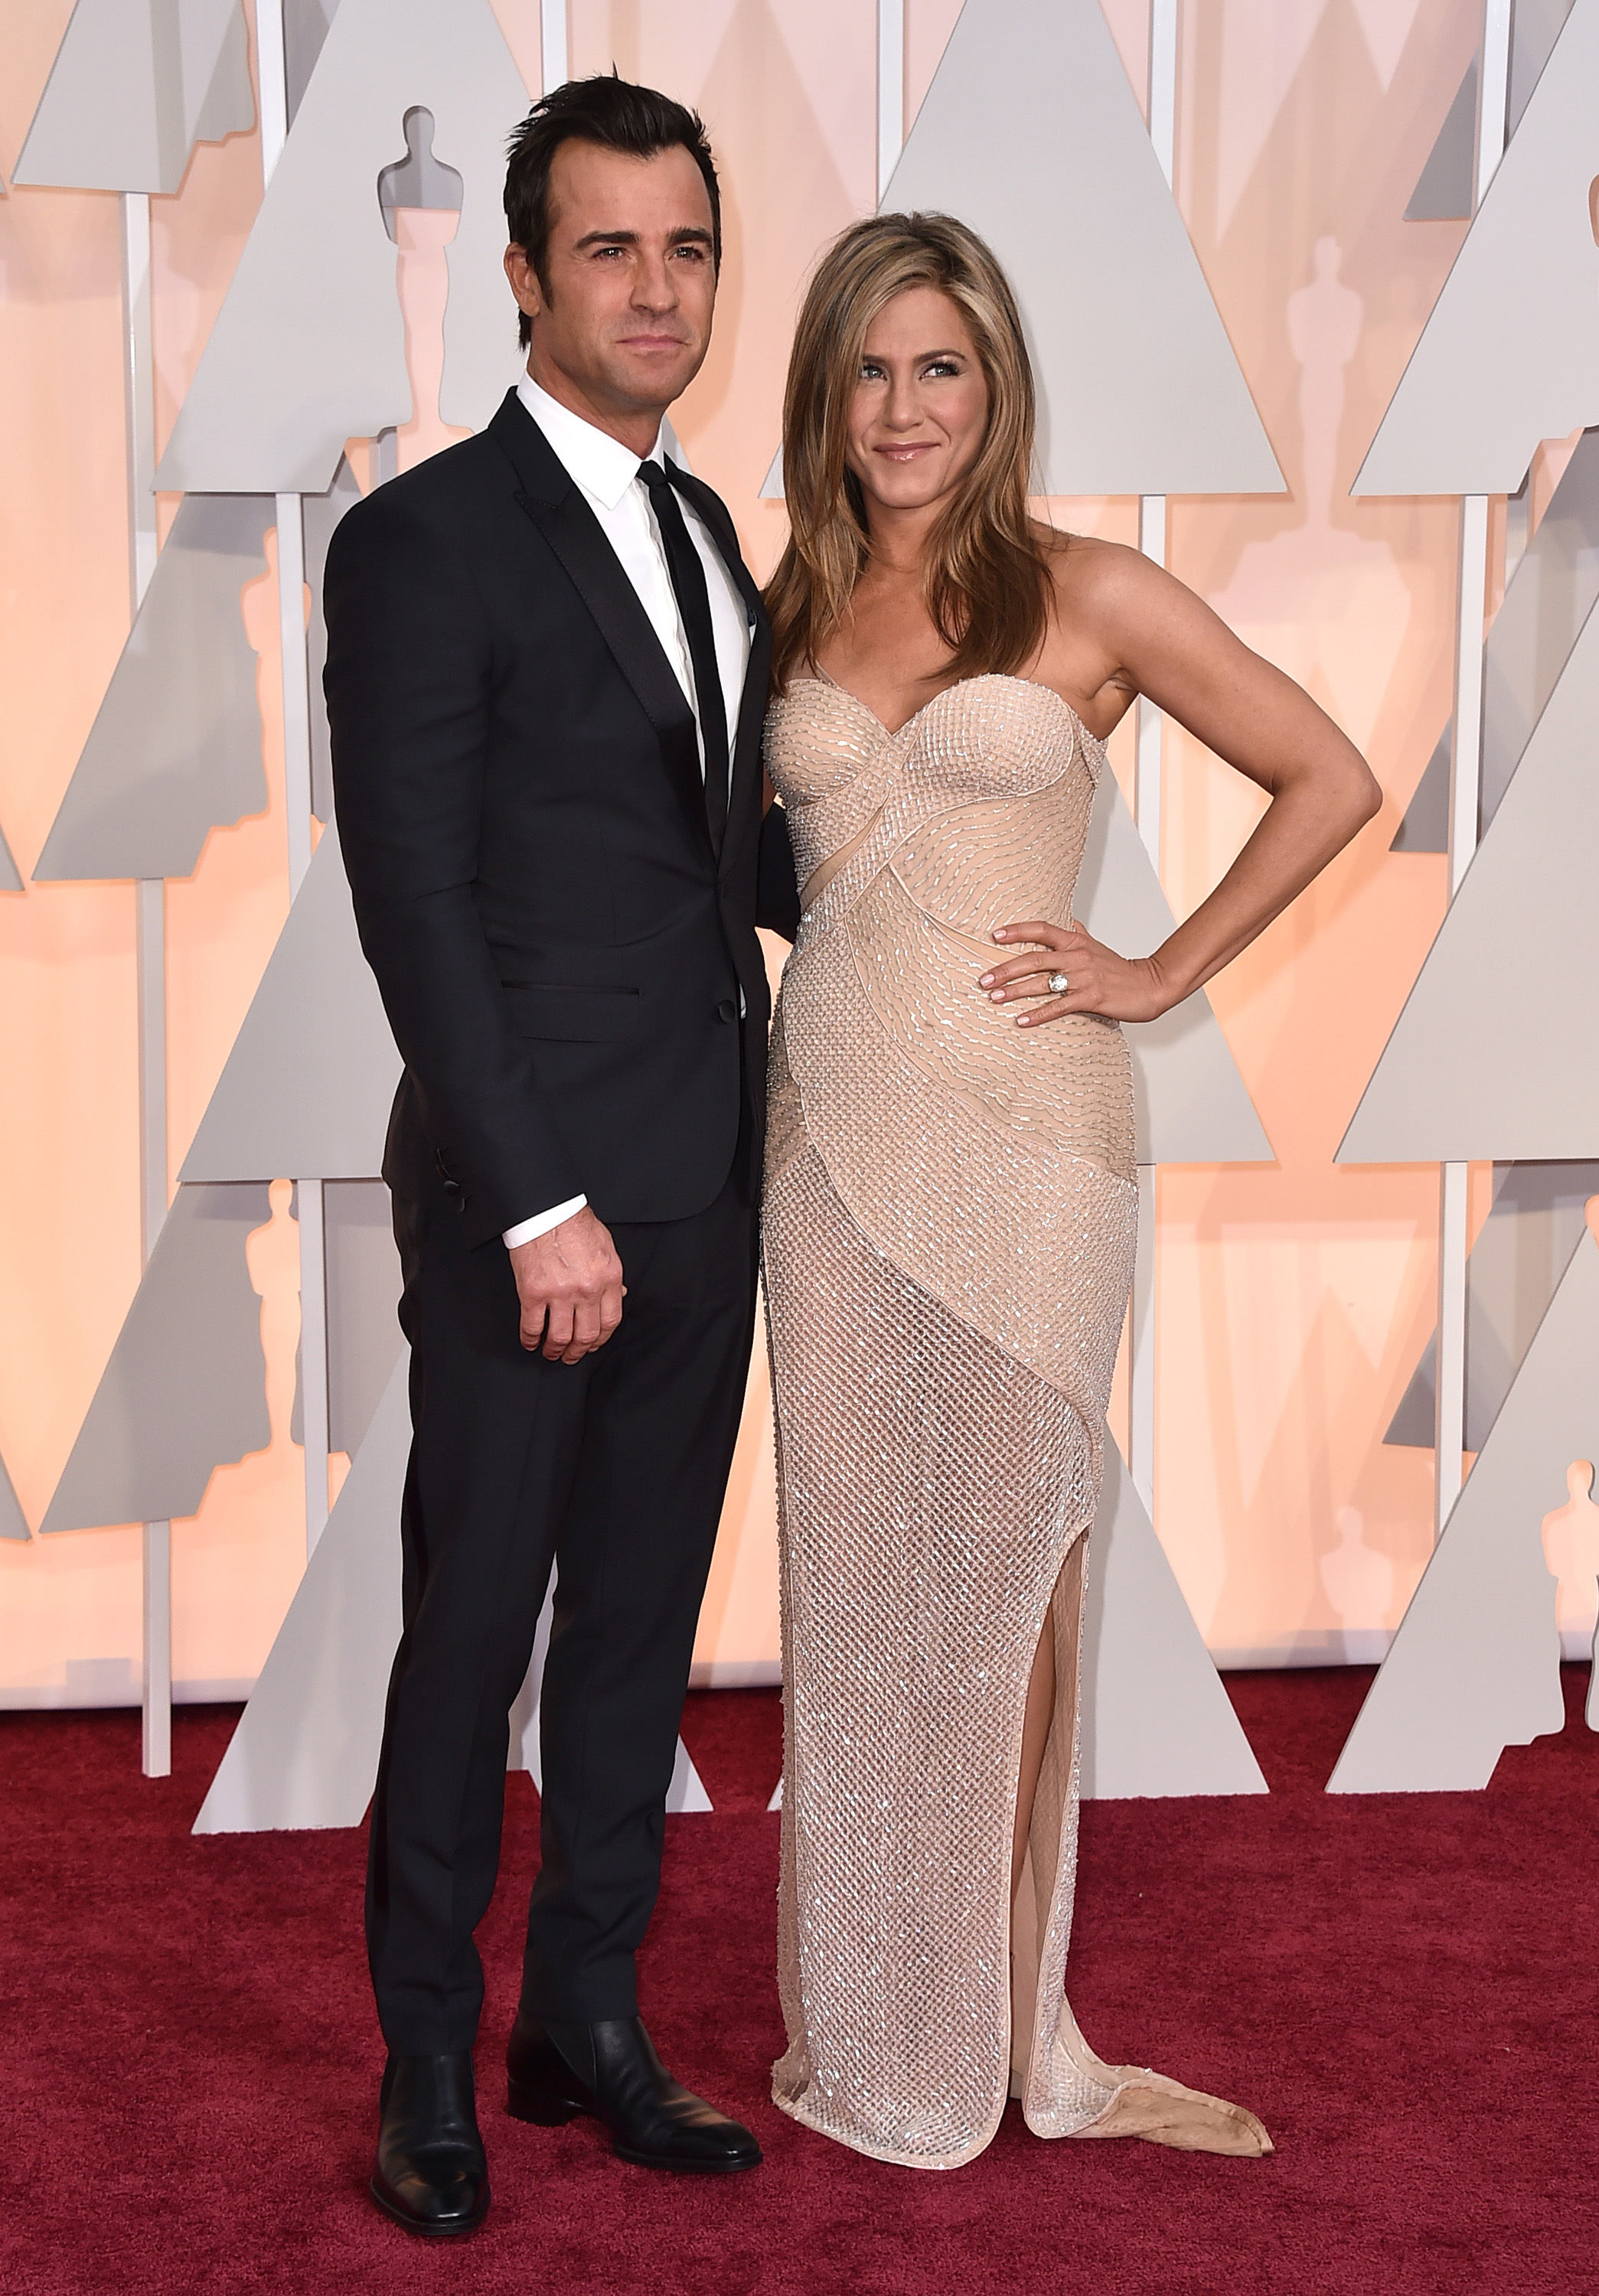 Happy anniversary, Jennifer Aniston and Justin Theroux!